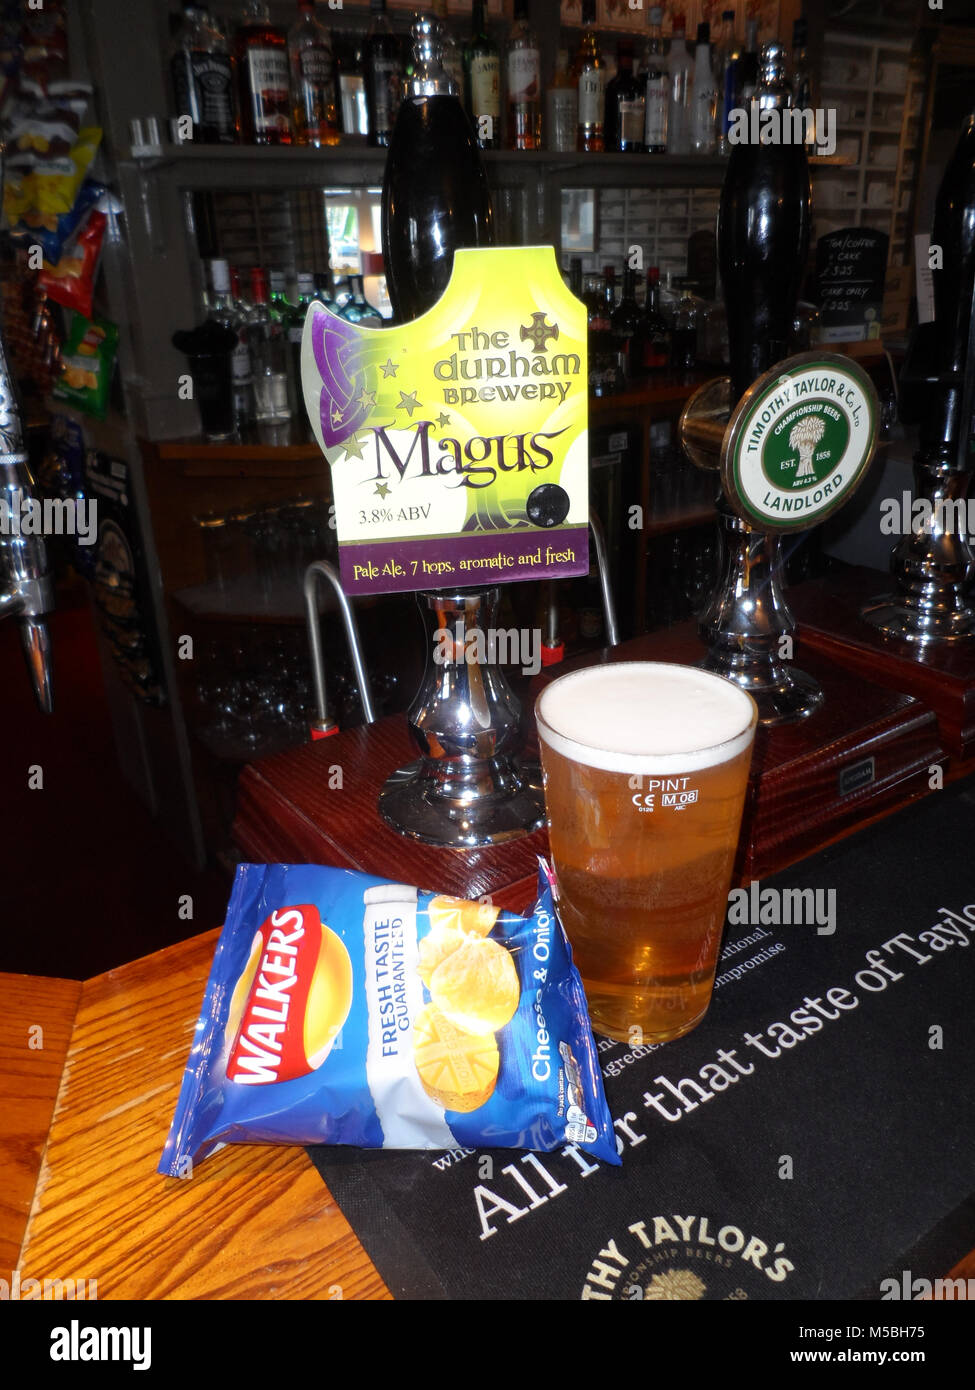 pint of Durham Brewery Pale ale, Magus, alongside the beer pump and pump clip and a packet of crisps/chips - Stock Image